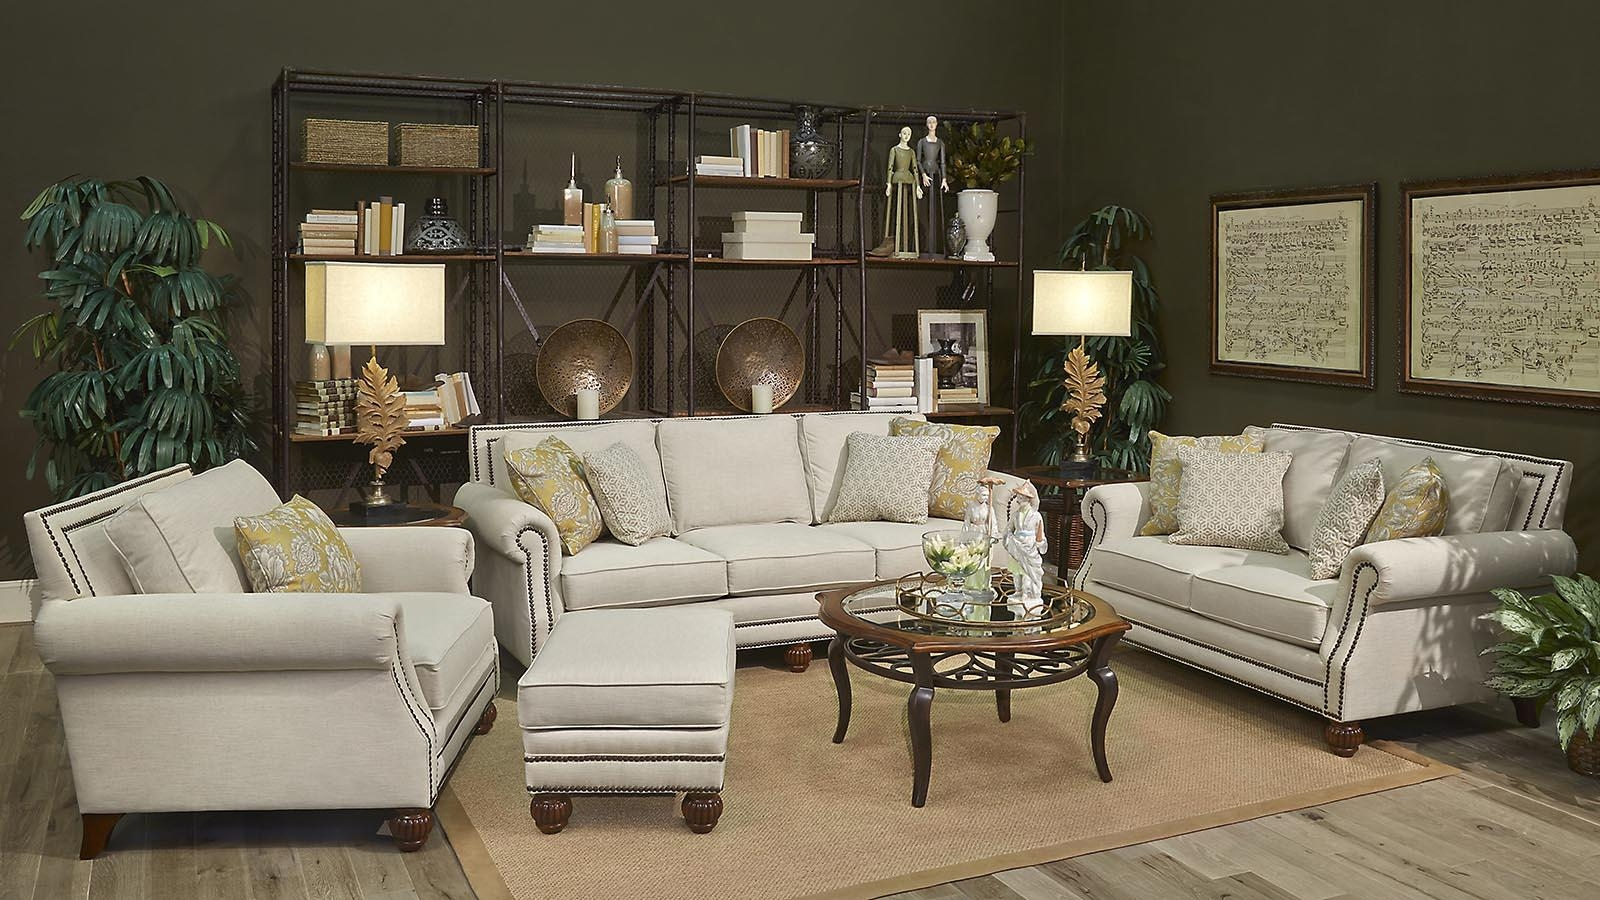 Mayo Furniture | Gallery Furniture Inside Living Room Sofa Chairs (Image 17 of 20)